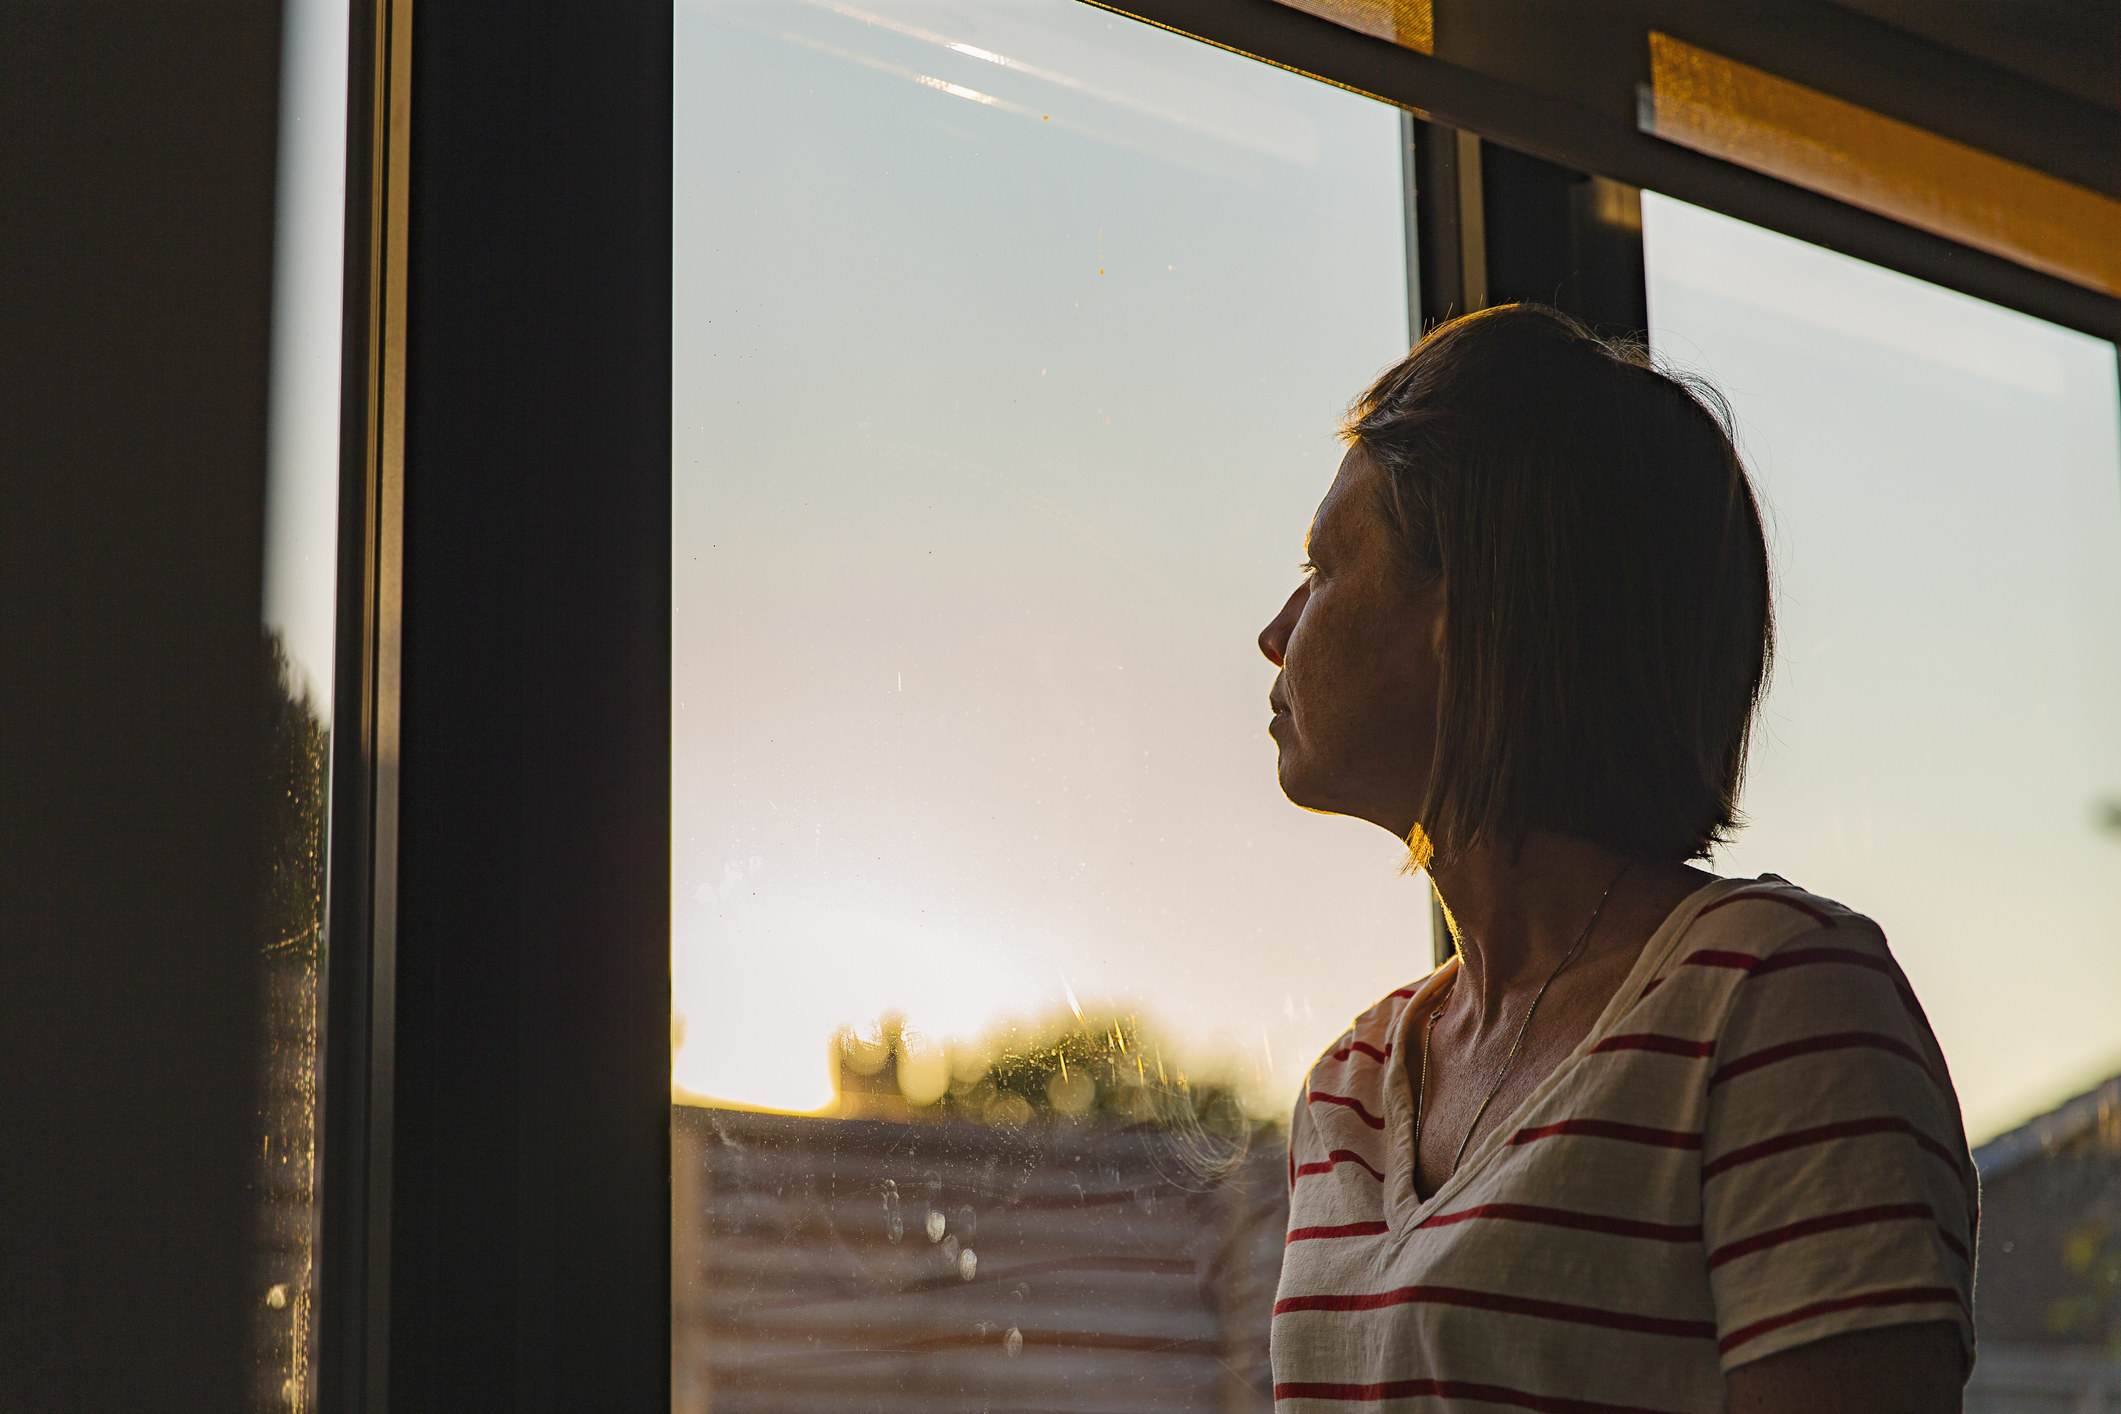 A woman looking out a window pensively